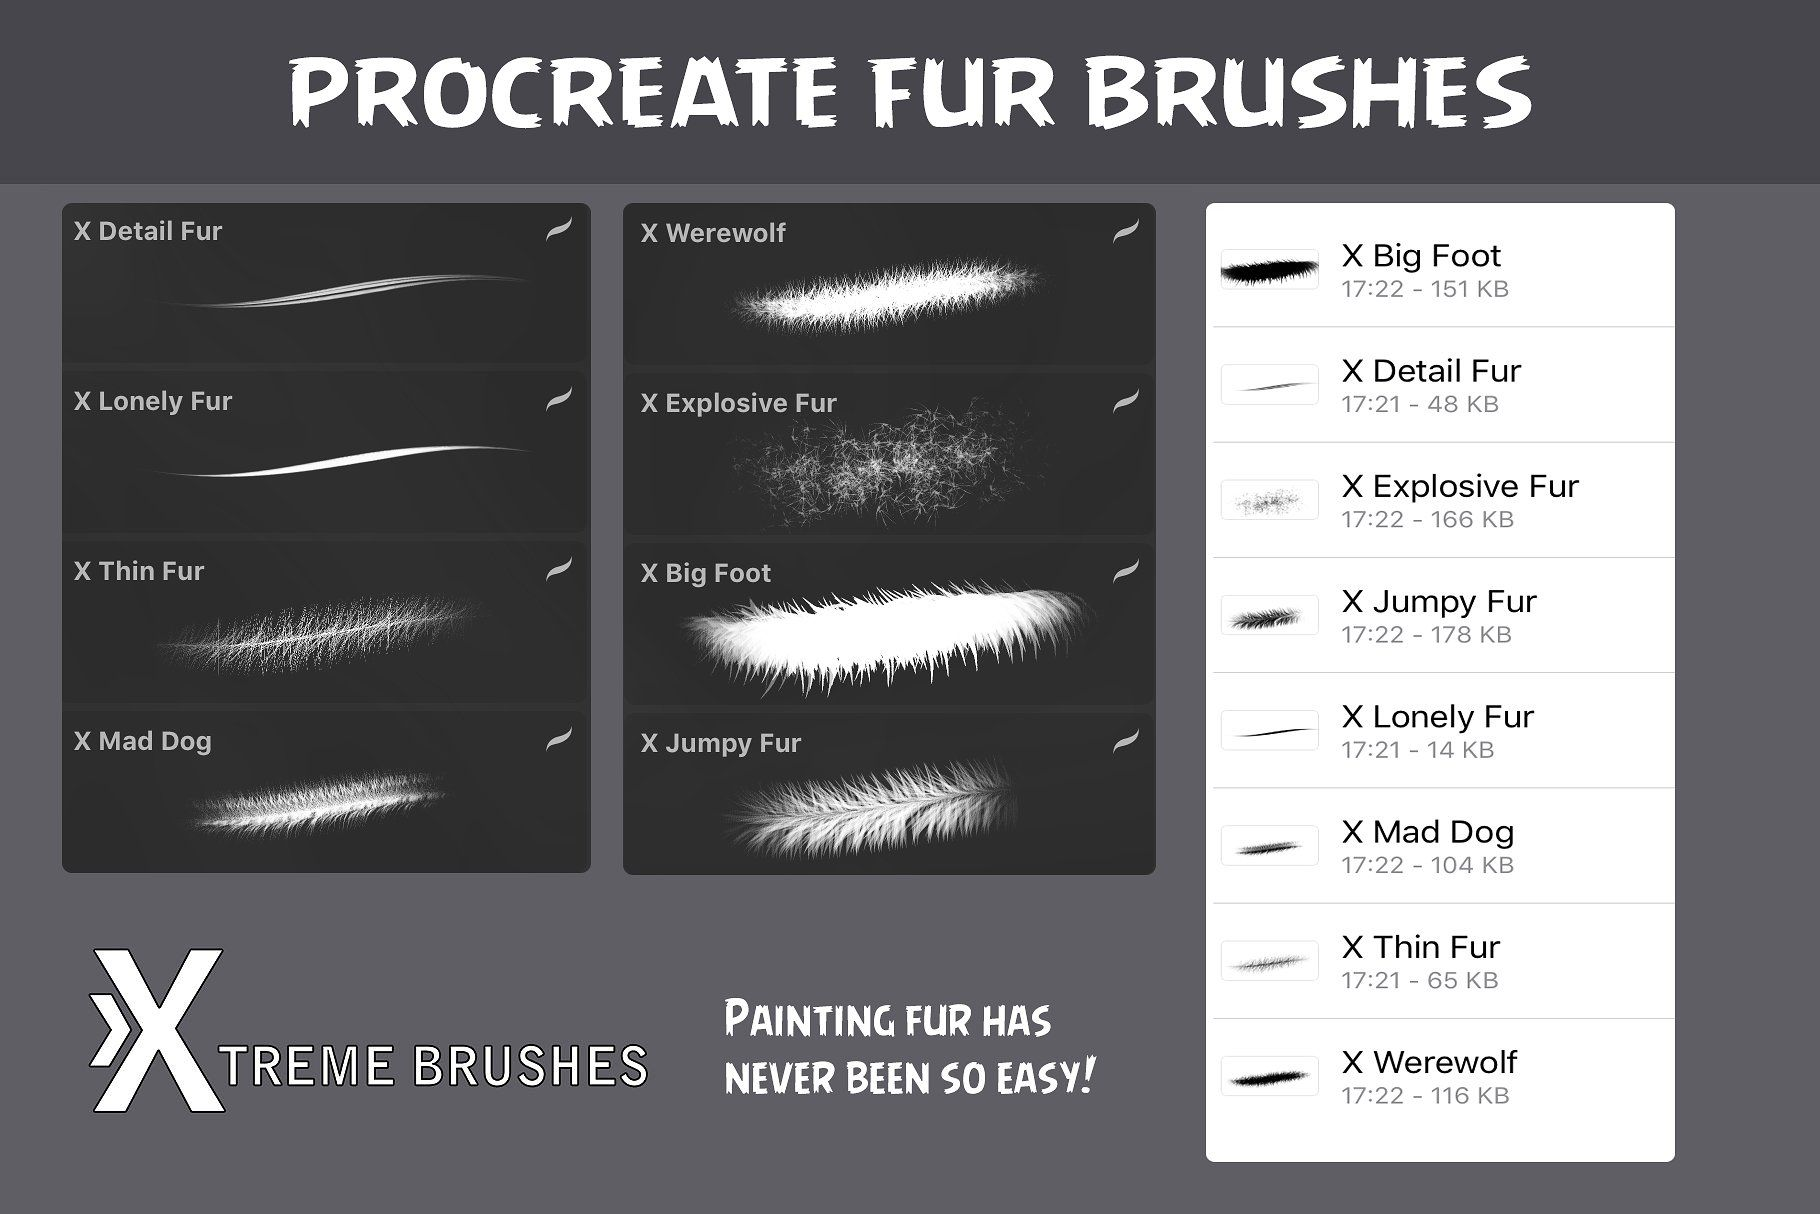 Procreate Fur Brushes Procreate Brushes Procreate Brushes Free